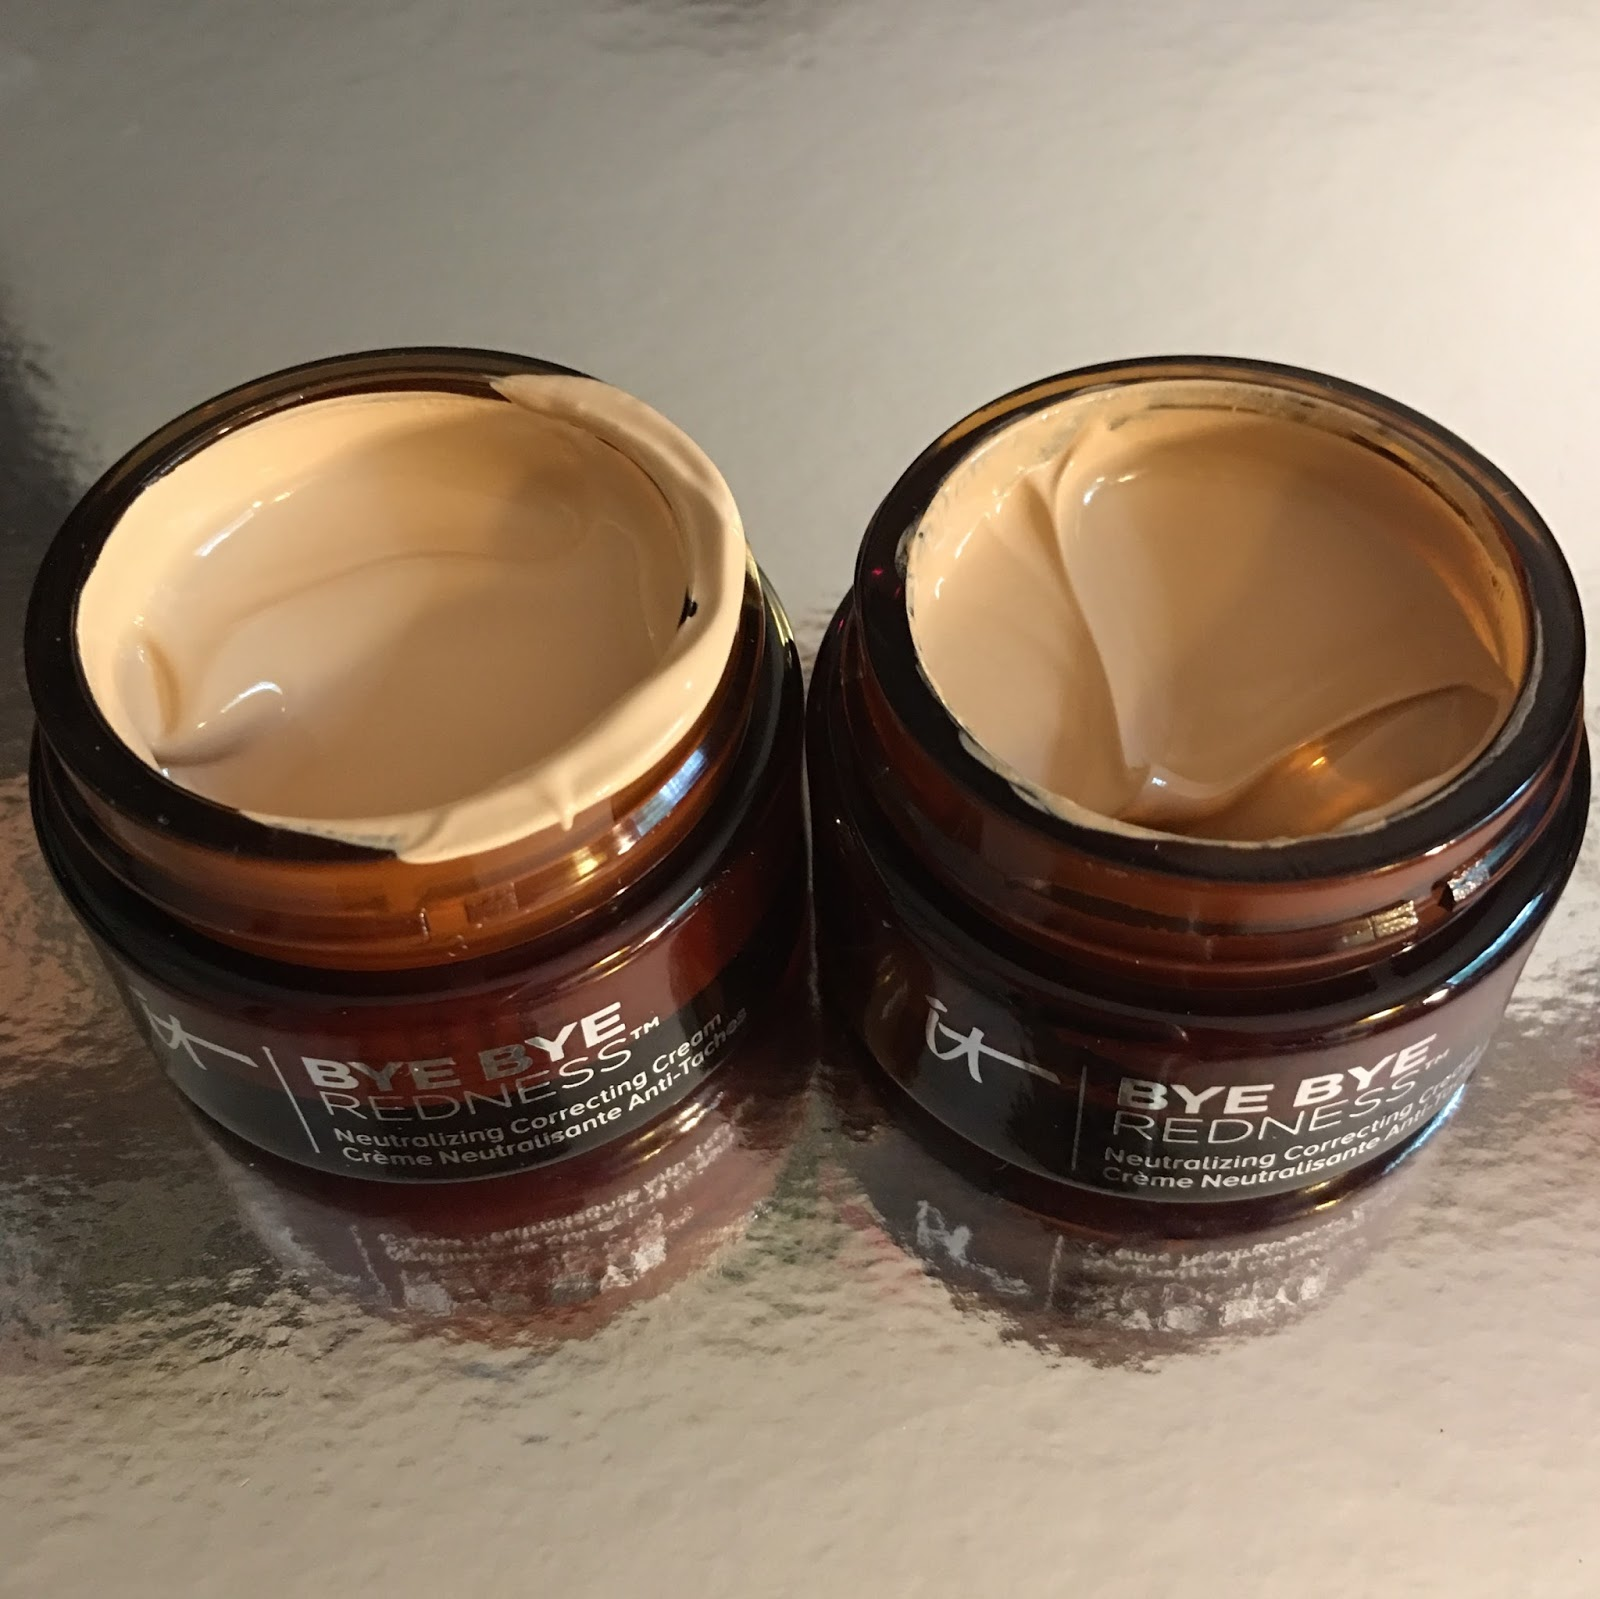 Bye Bye Redness Redness Erasing Correcting Powder by IT Cosmetics #18